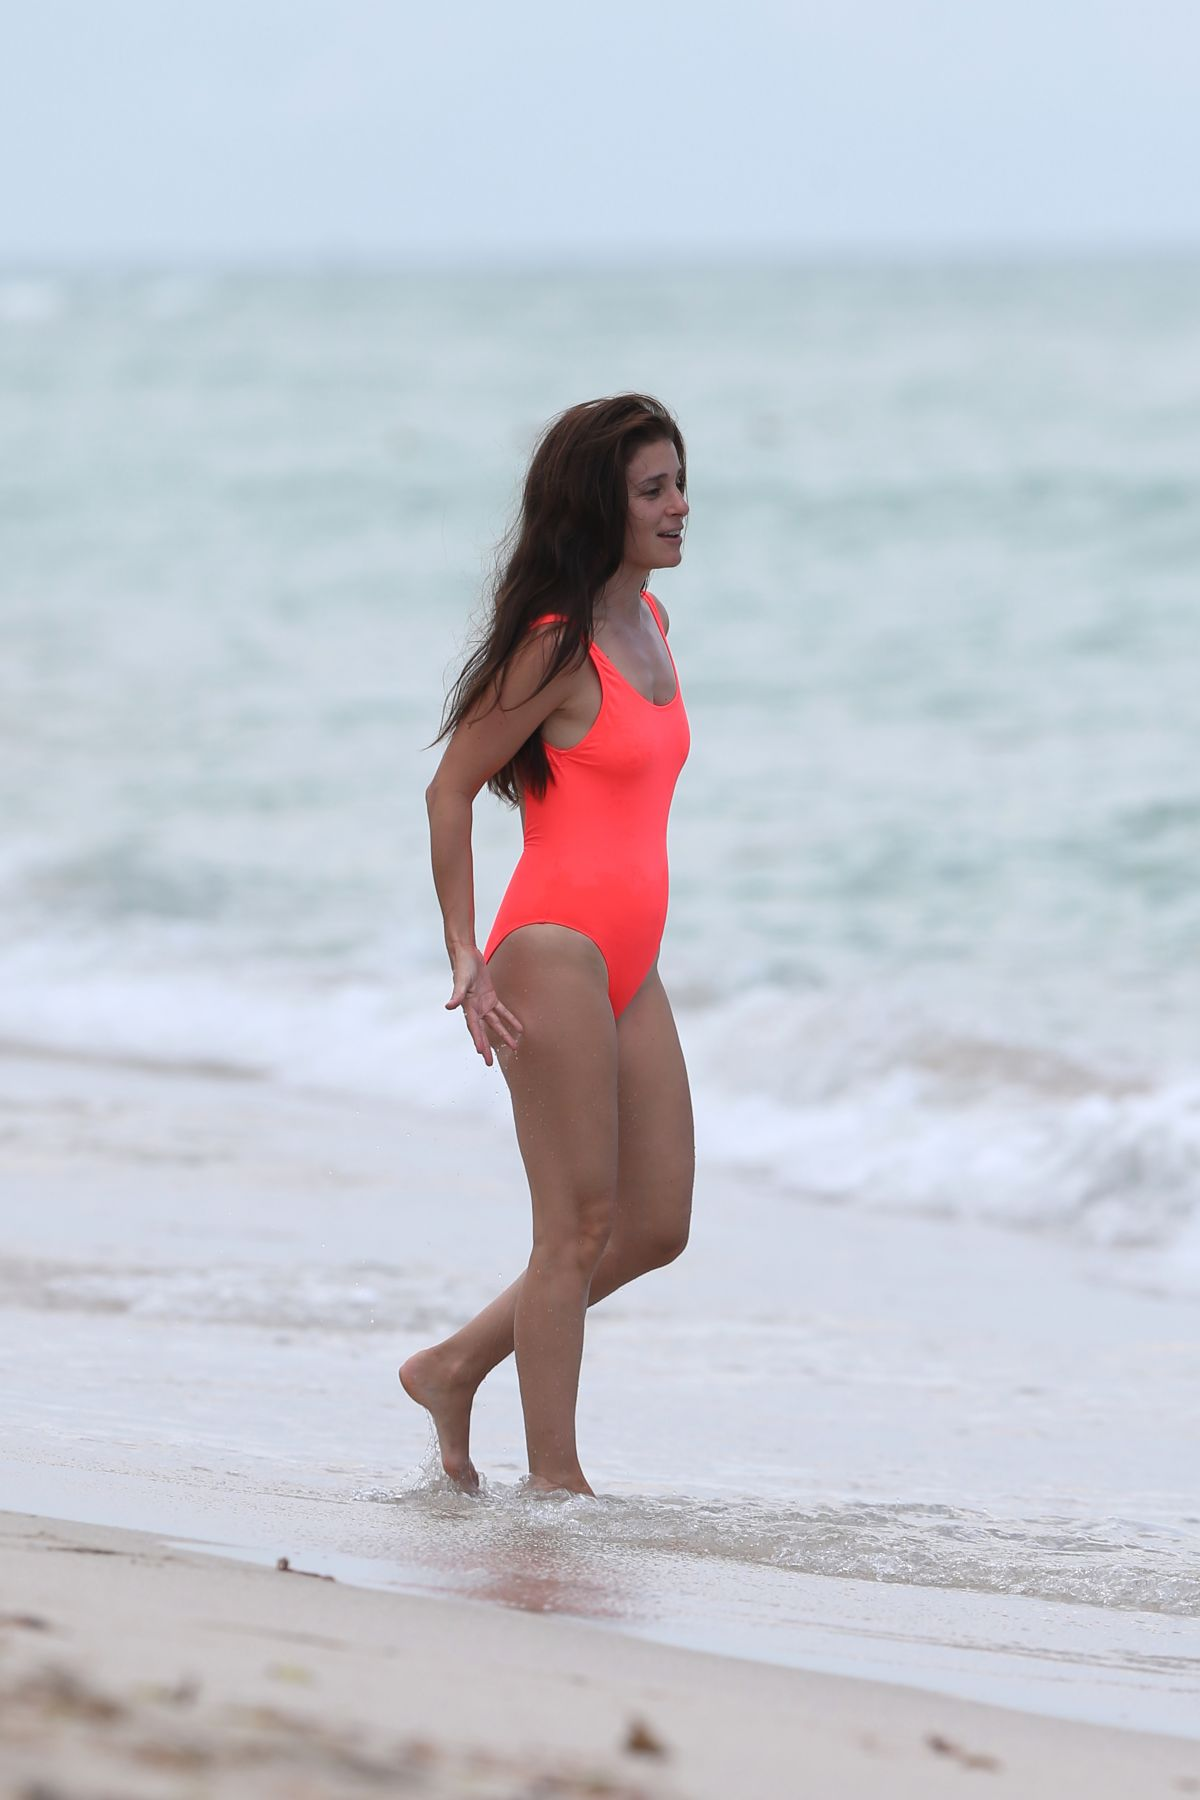 Shiri Appleby Wears a swimsuit at the beach in Miami ... Britney Spears Vegas 2017